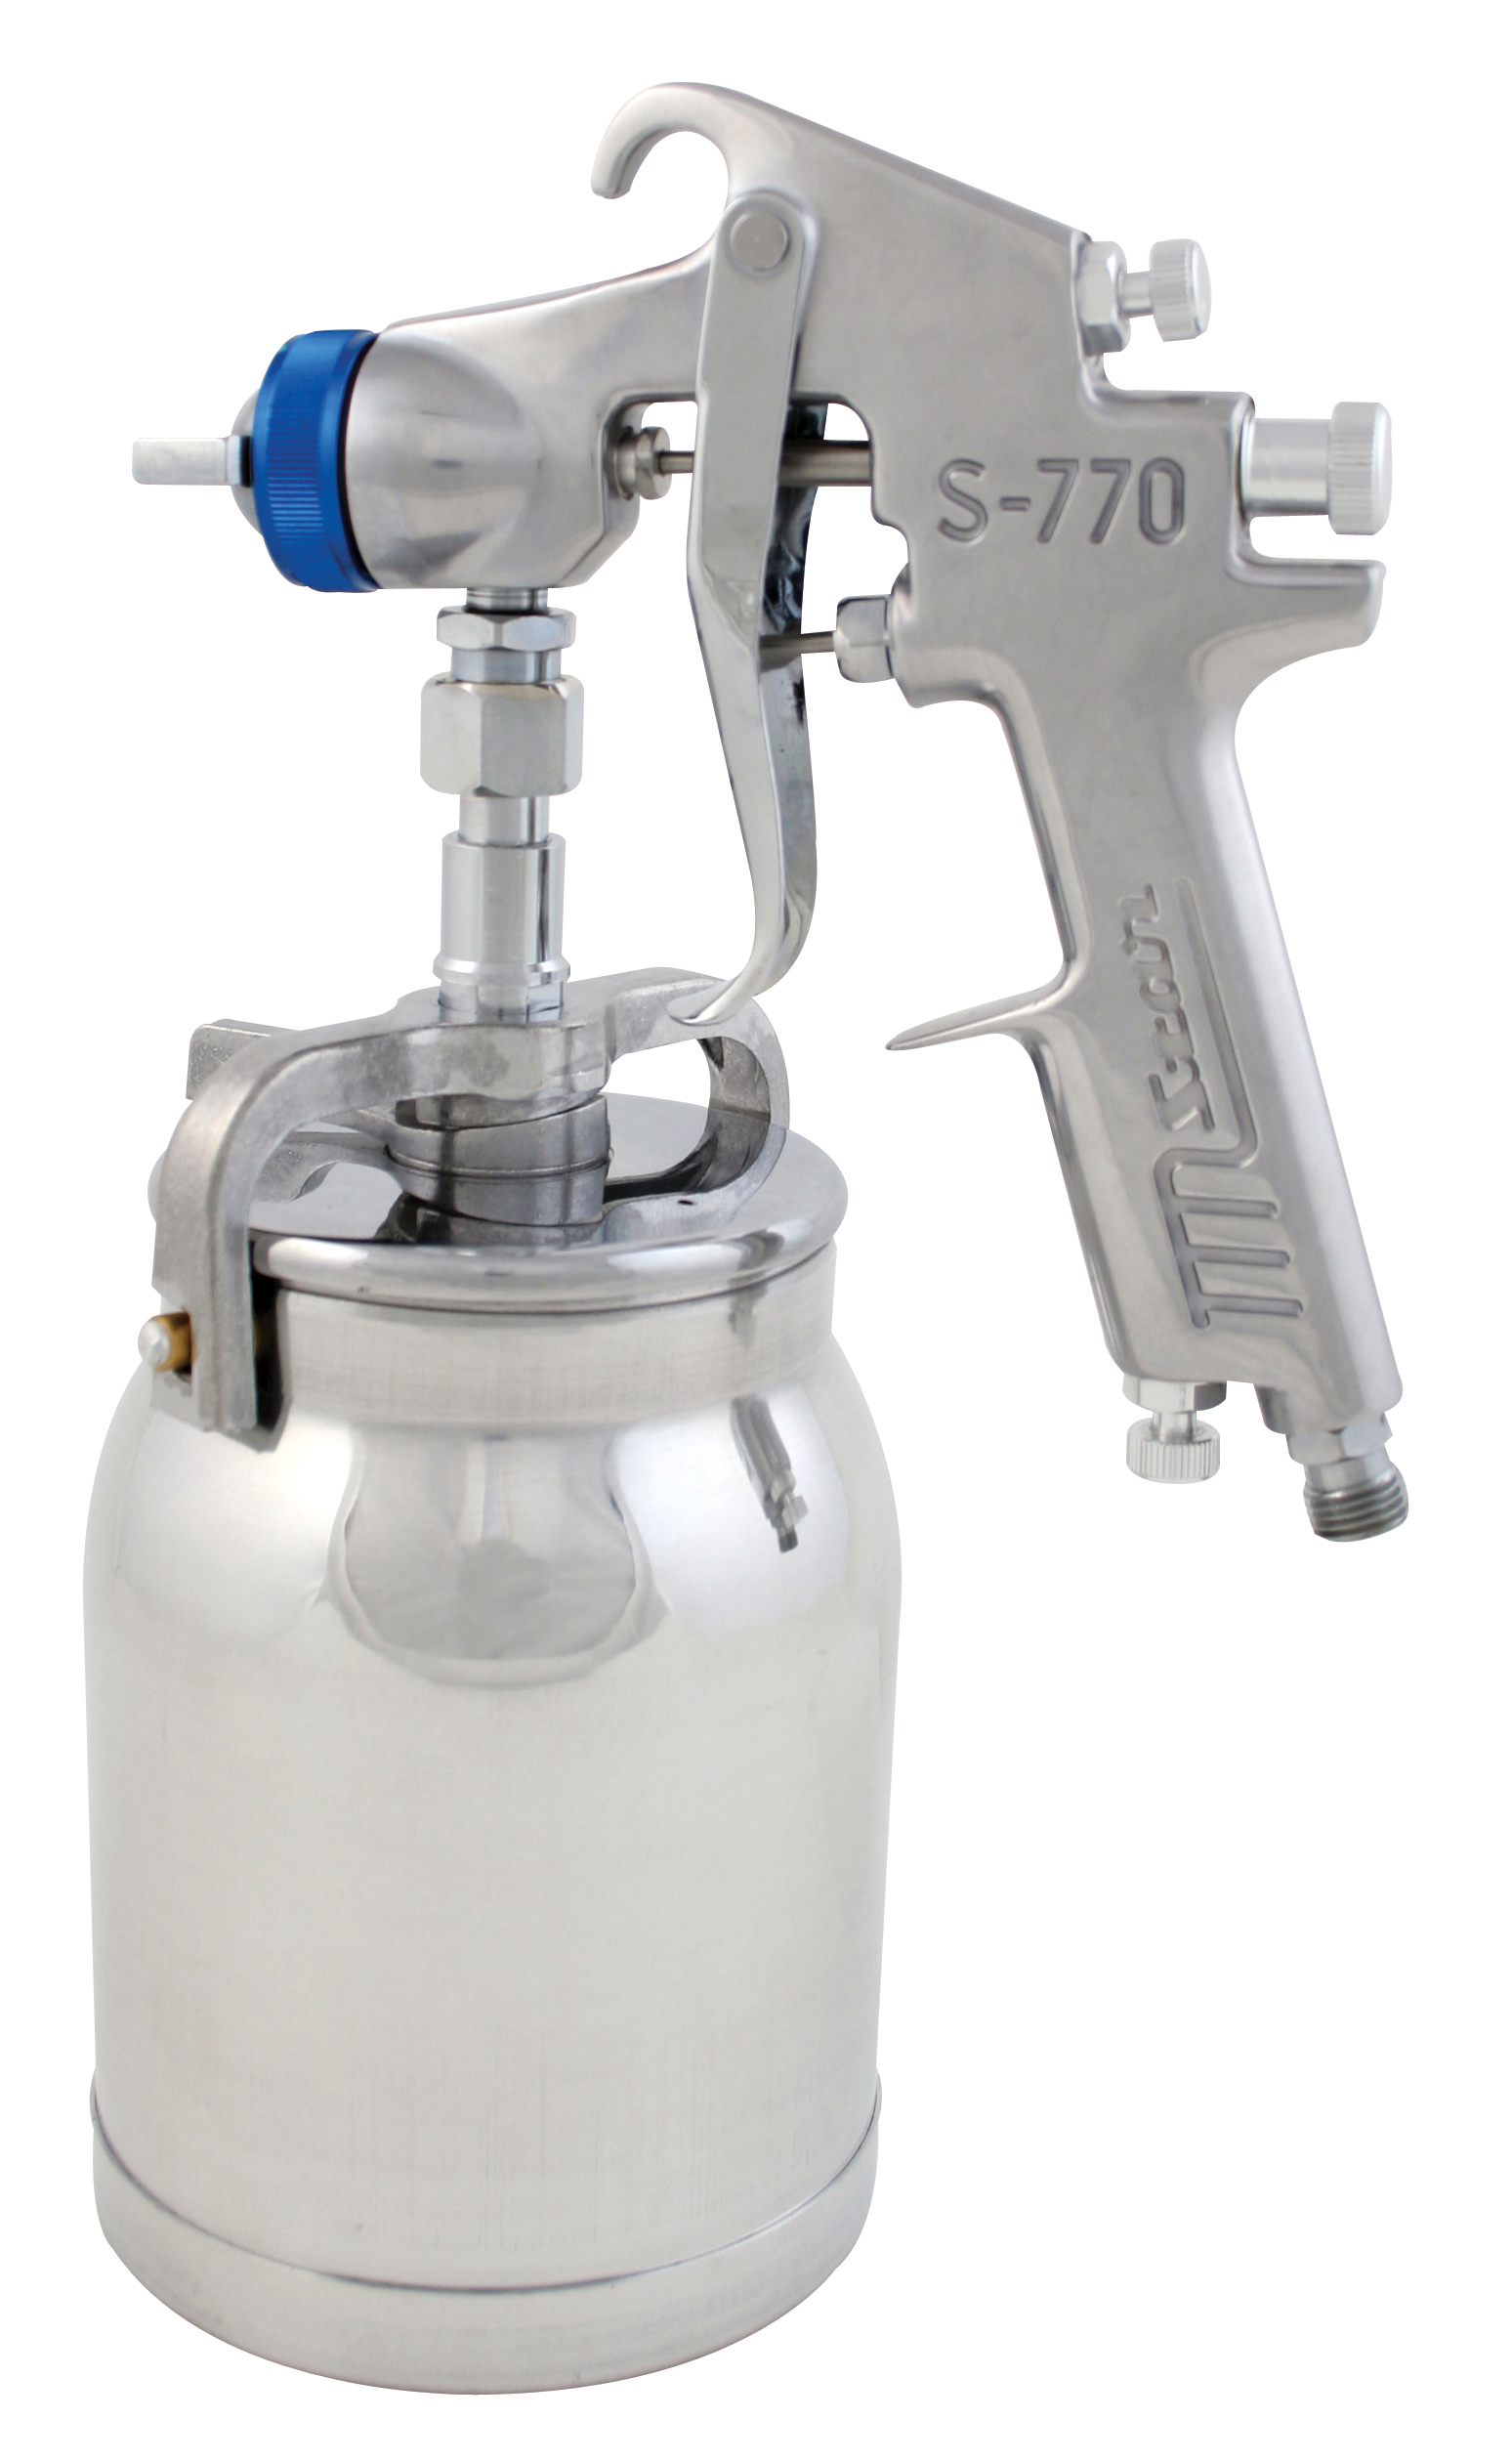 Spray Guns & Air Dusters